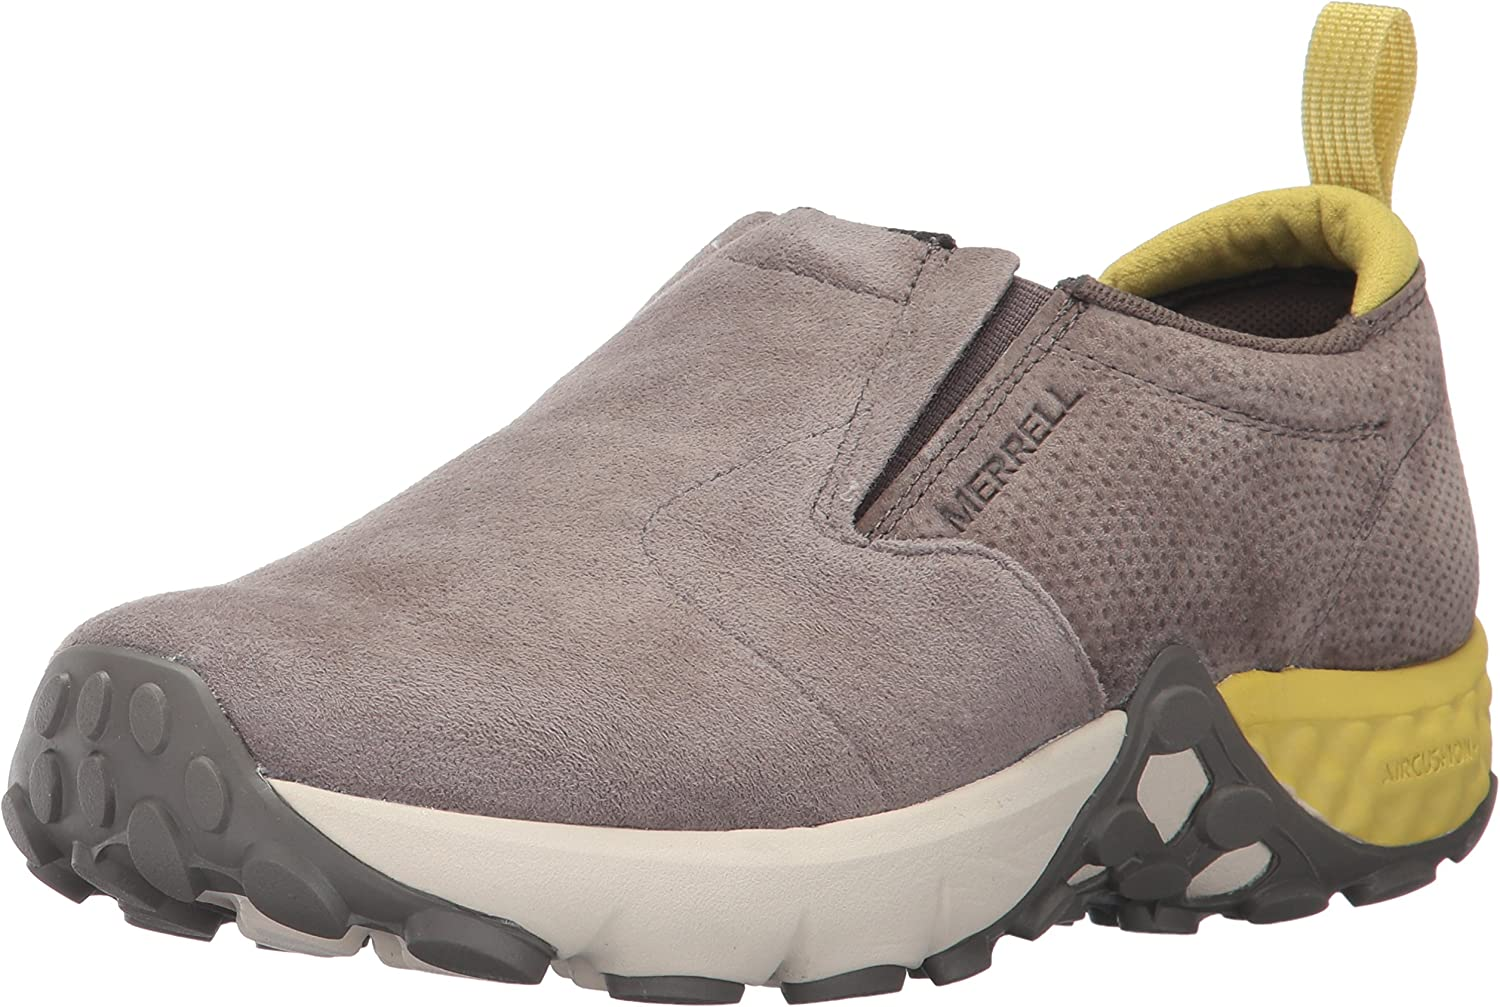 Merrell Women's Jungle Moc AC+ shoes